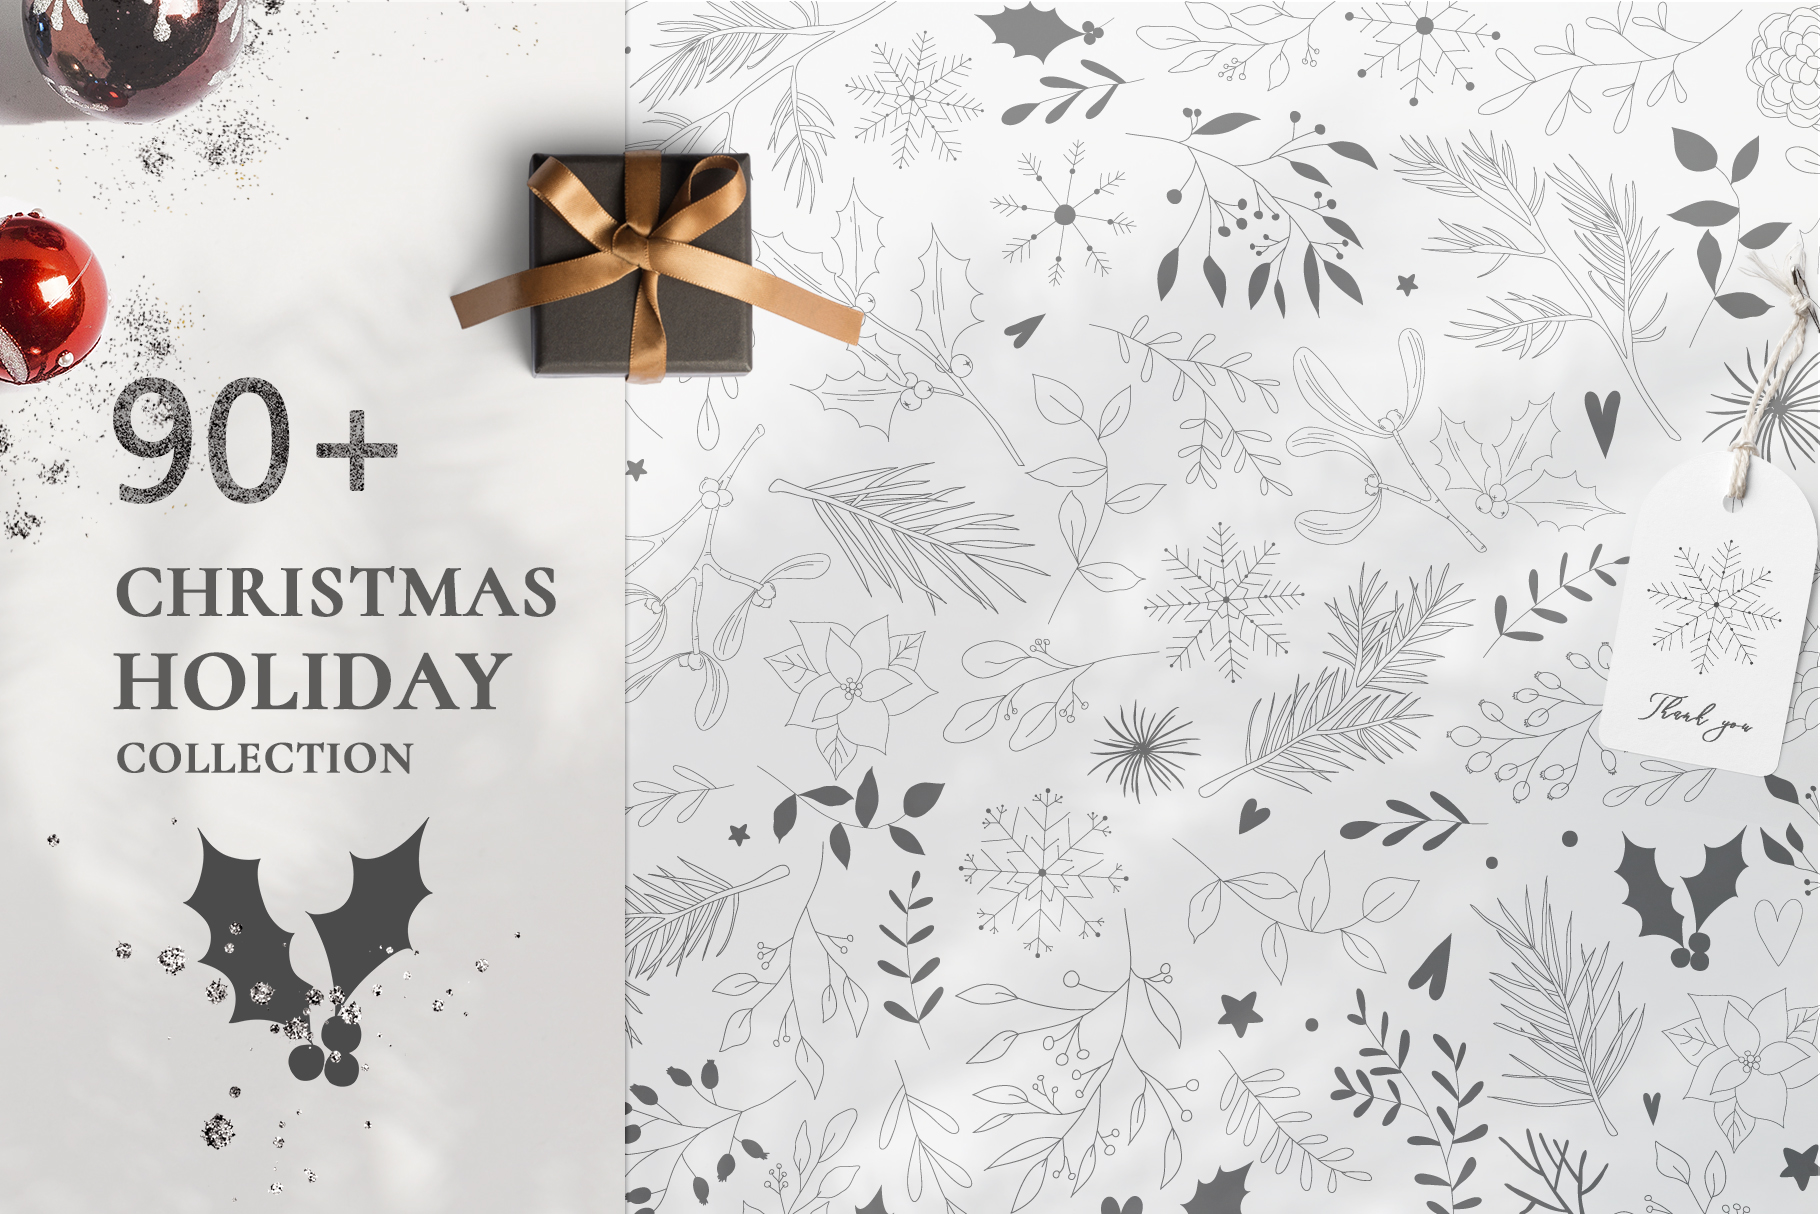 Download Free Christmas Holiday Collection Graphic By Madiwaso Creative Fabrica for Cricut Explore, Silhouette and other cutting machines.